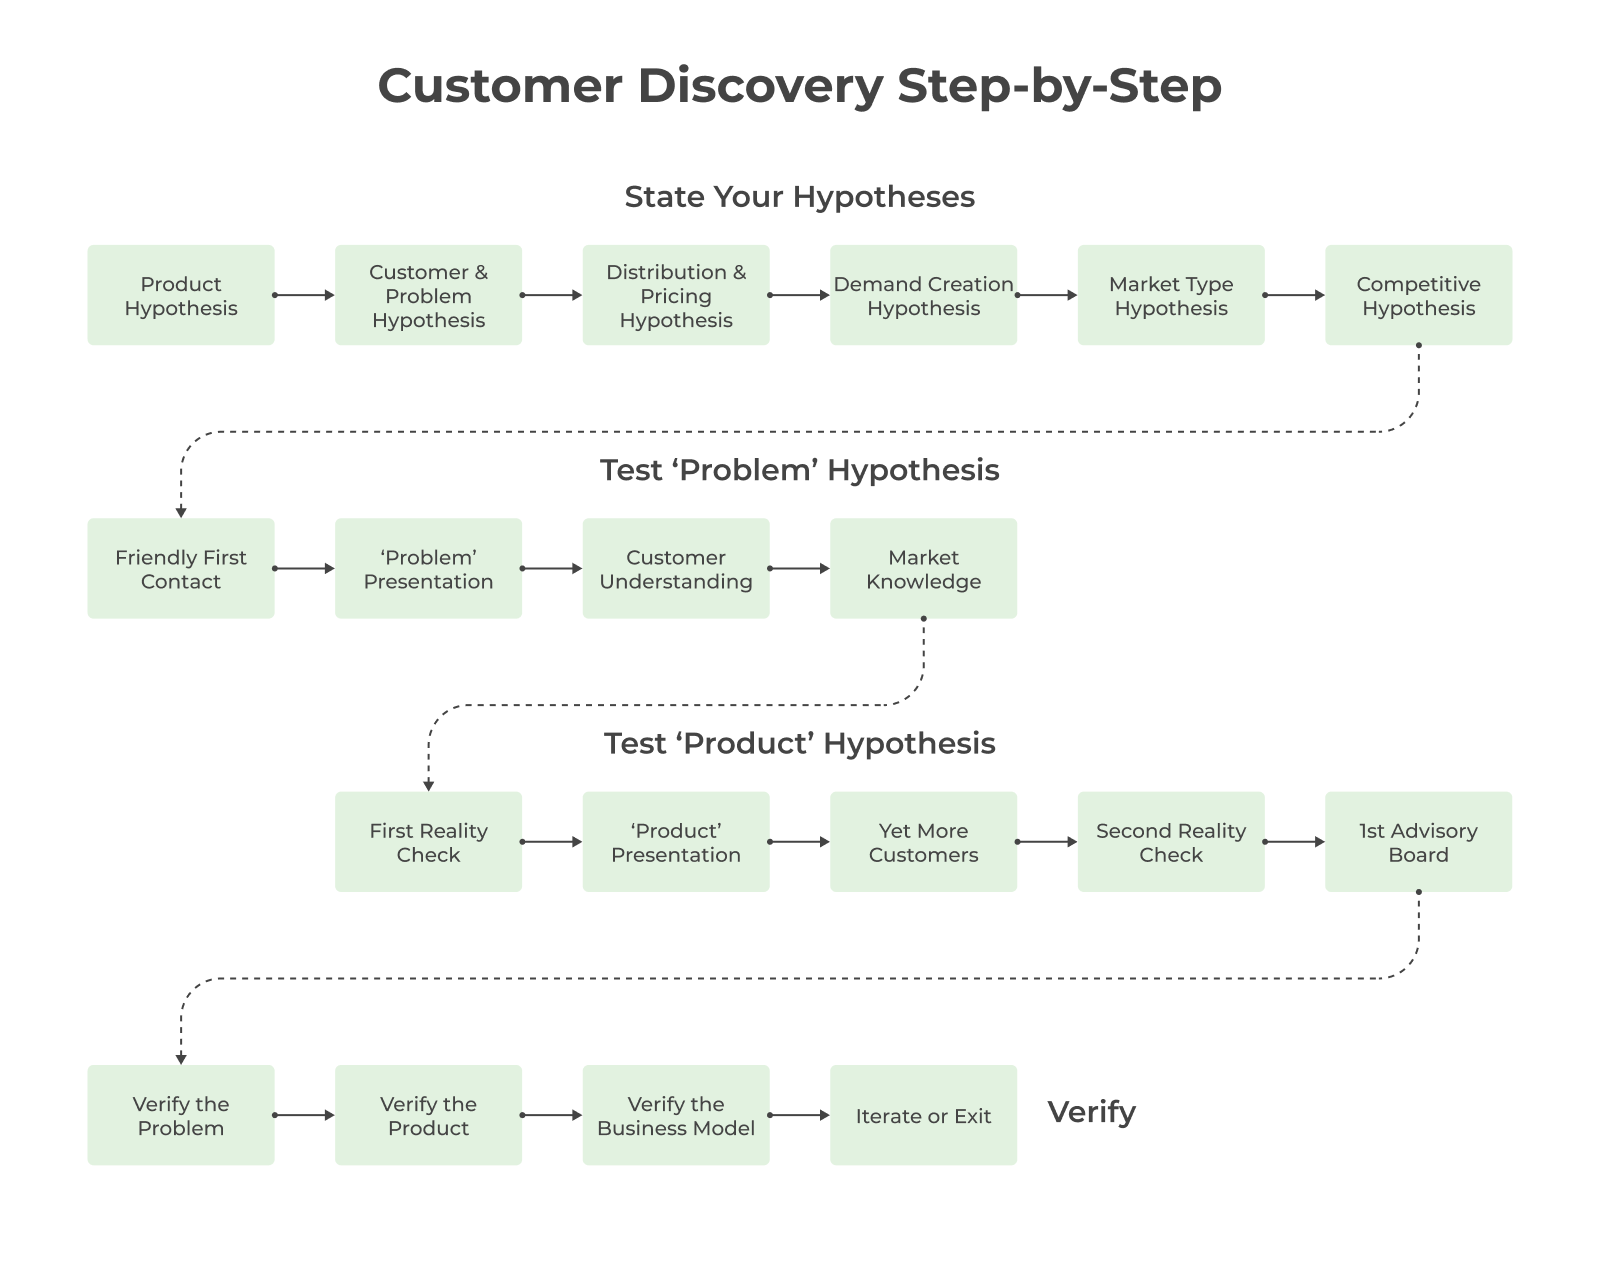 Customer Discovery Step-by-Step - STATE YOUR HYPOTHESIS: Product Hypothesis > Customer and Problem Hypothesis > Distribution and Pricing Hypothesis > Demand Creation Hypothesis > Market Type Hypothesis > Competitive Hypothesis > TEST 'PROBLEM' HYPOTHESIS: Friendly first contact > 'Problem' Presentation > Customer Understanding > Market Knowledge; TEST 'PRODUCT' HYPOTHESIS: First reality check > 'Product' Presentation > More Customers > Second Reality Check > 1st Advisory Board > Verify the Problem > Verify the Product > Verify the Business Model > Iterate or Exit